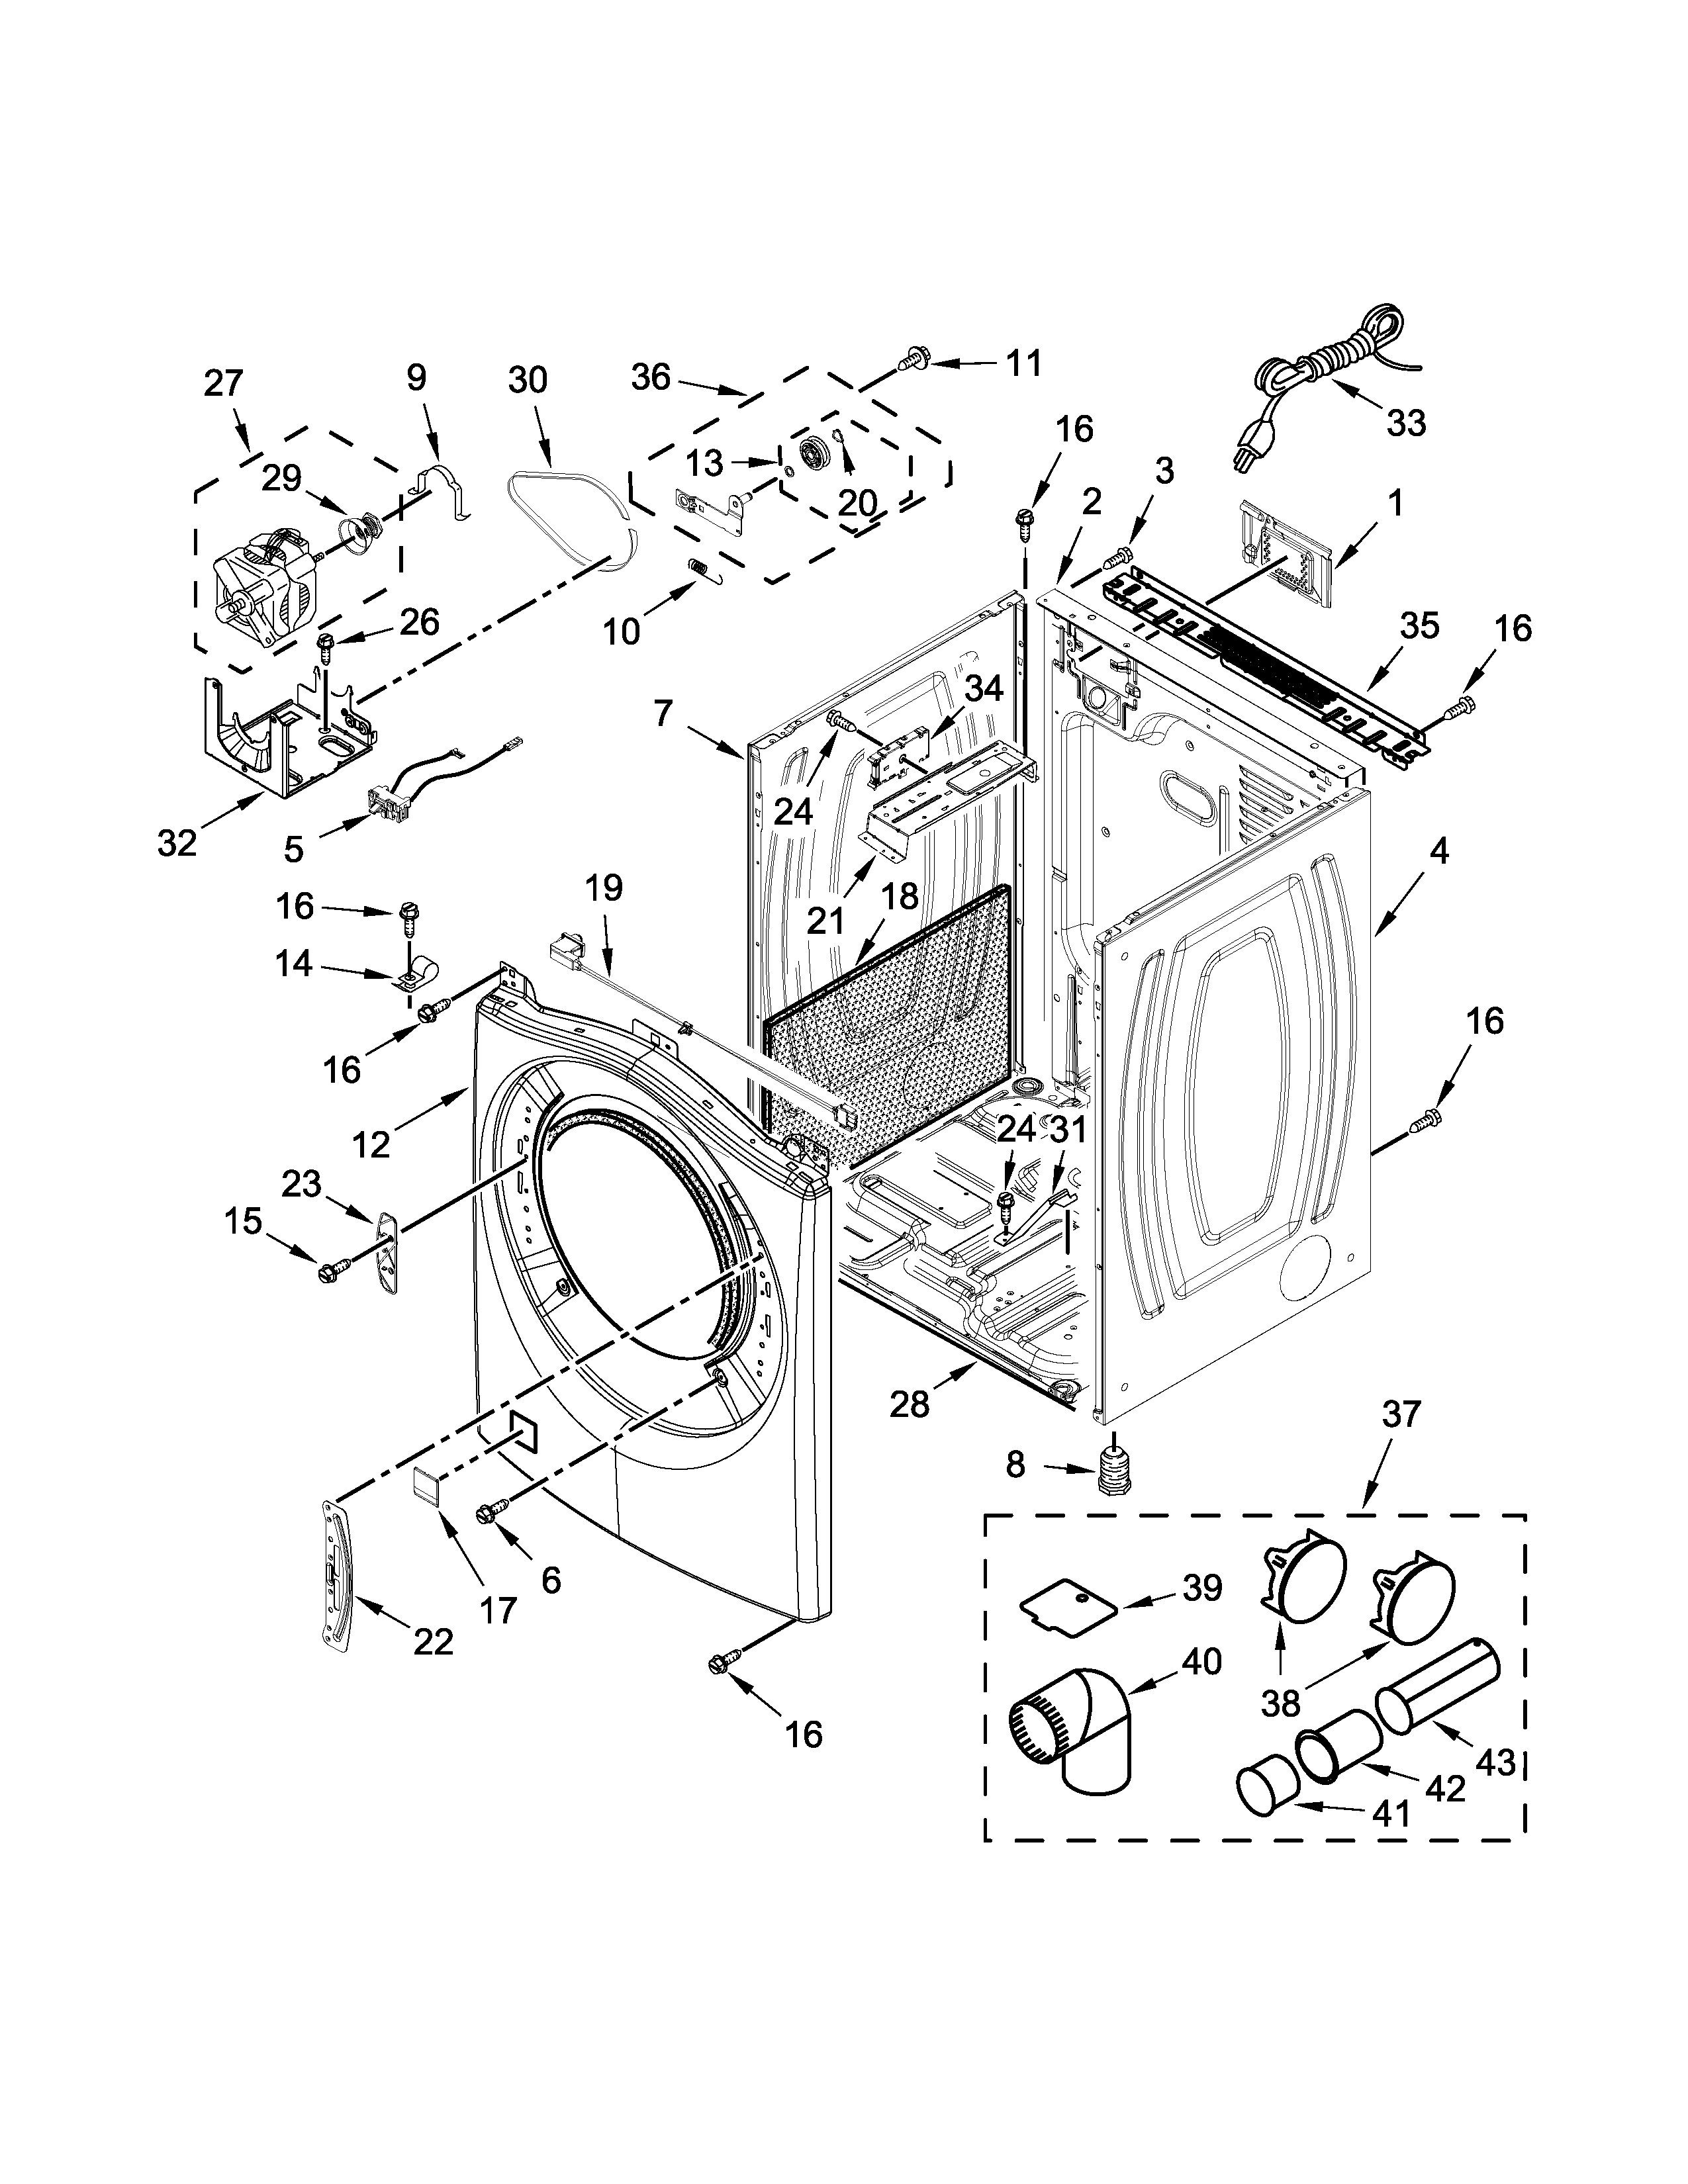 Whirlpool WGD90HEFW0 cabinet parts diagram